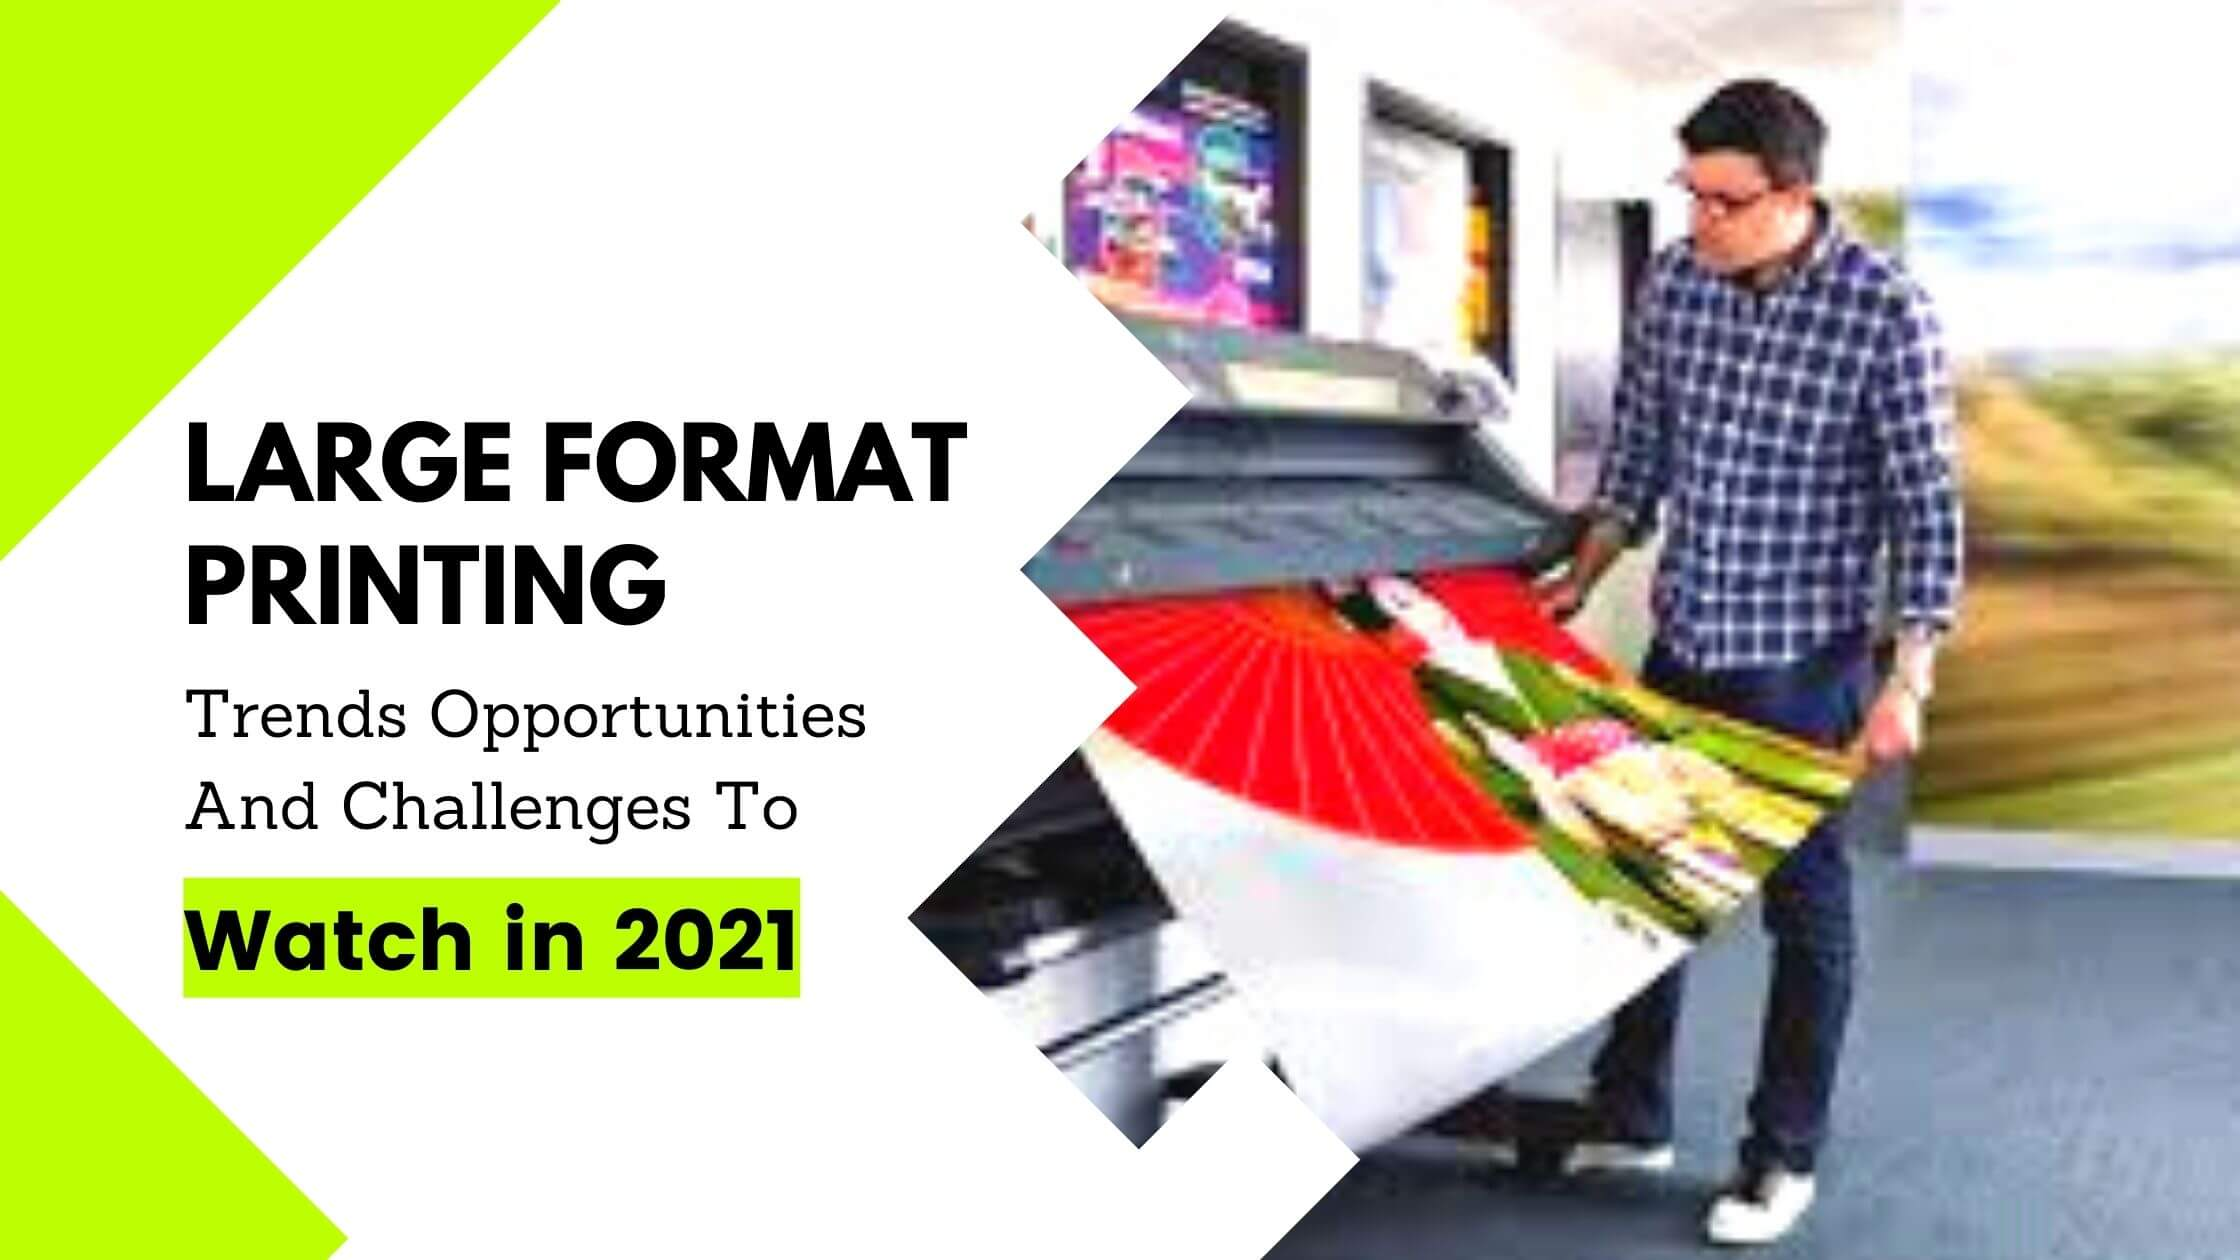 Large Format Printing Trends, Opportunities And Challenges To Watch In 2021